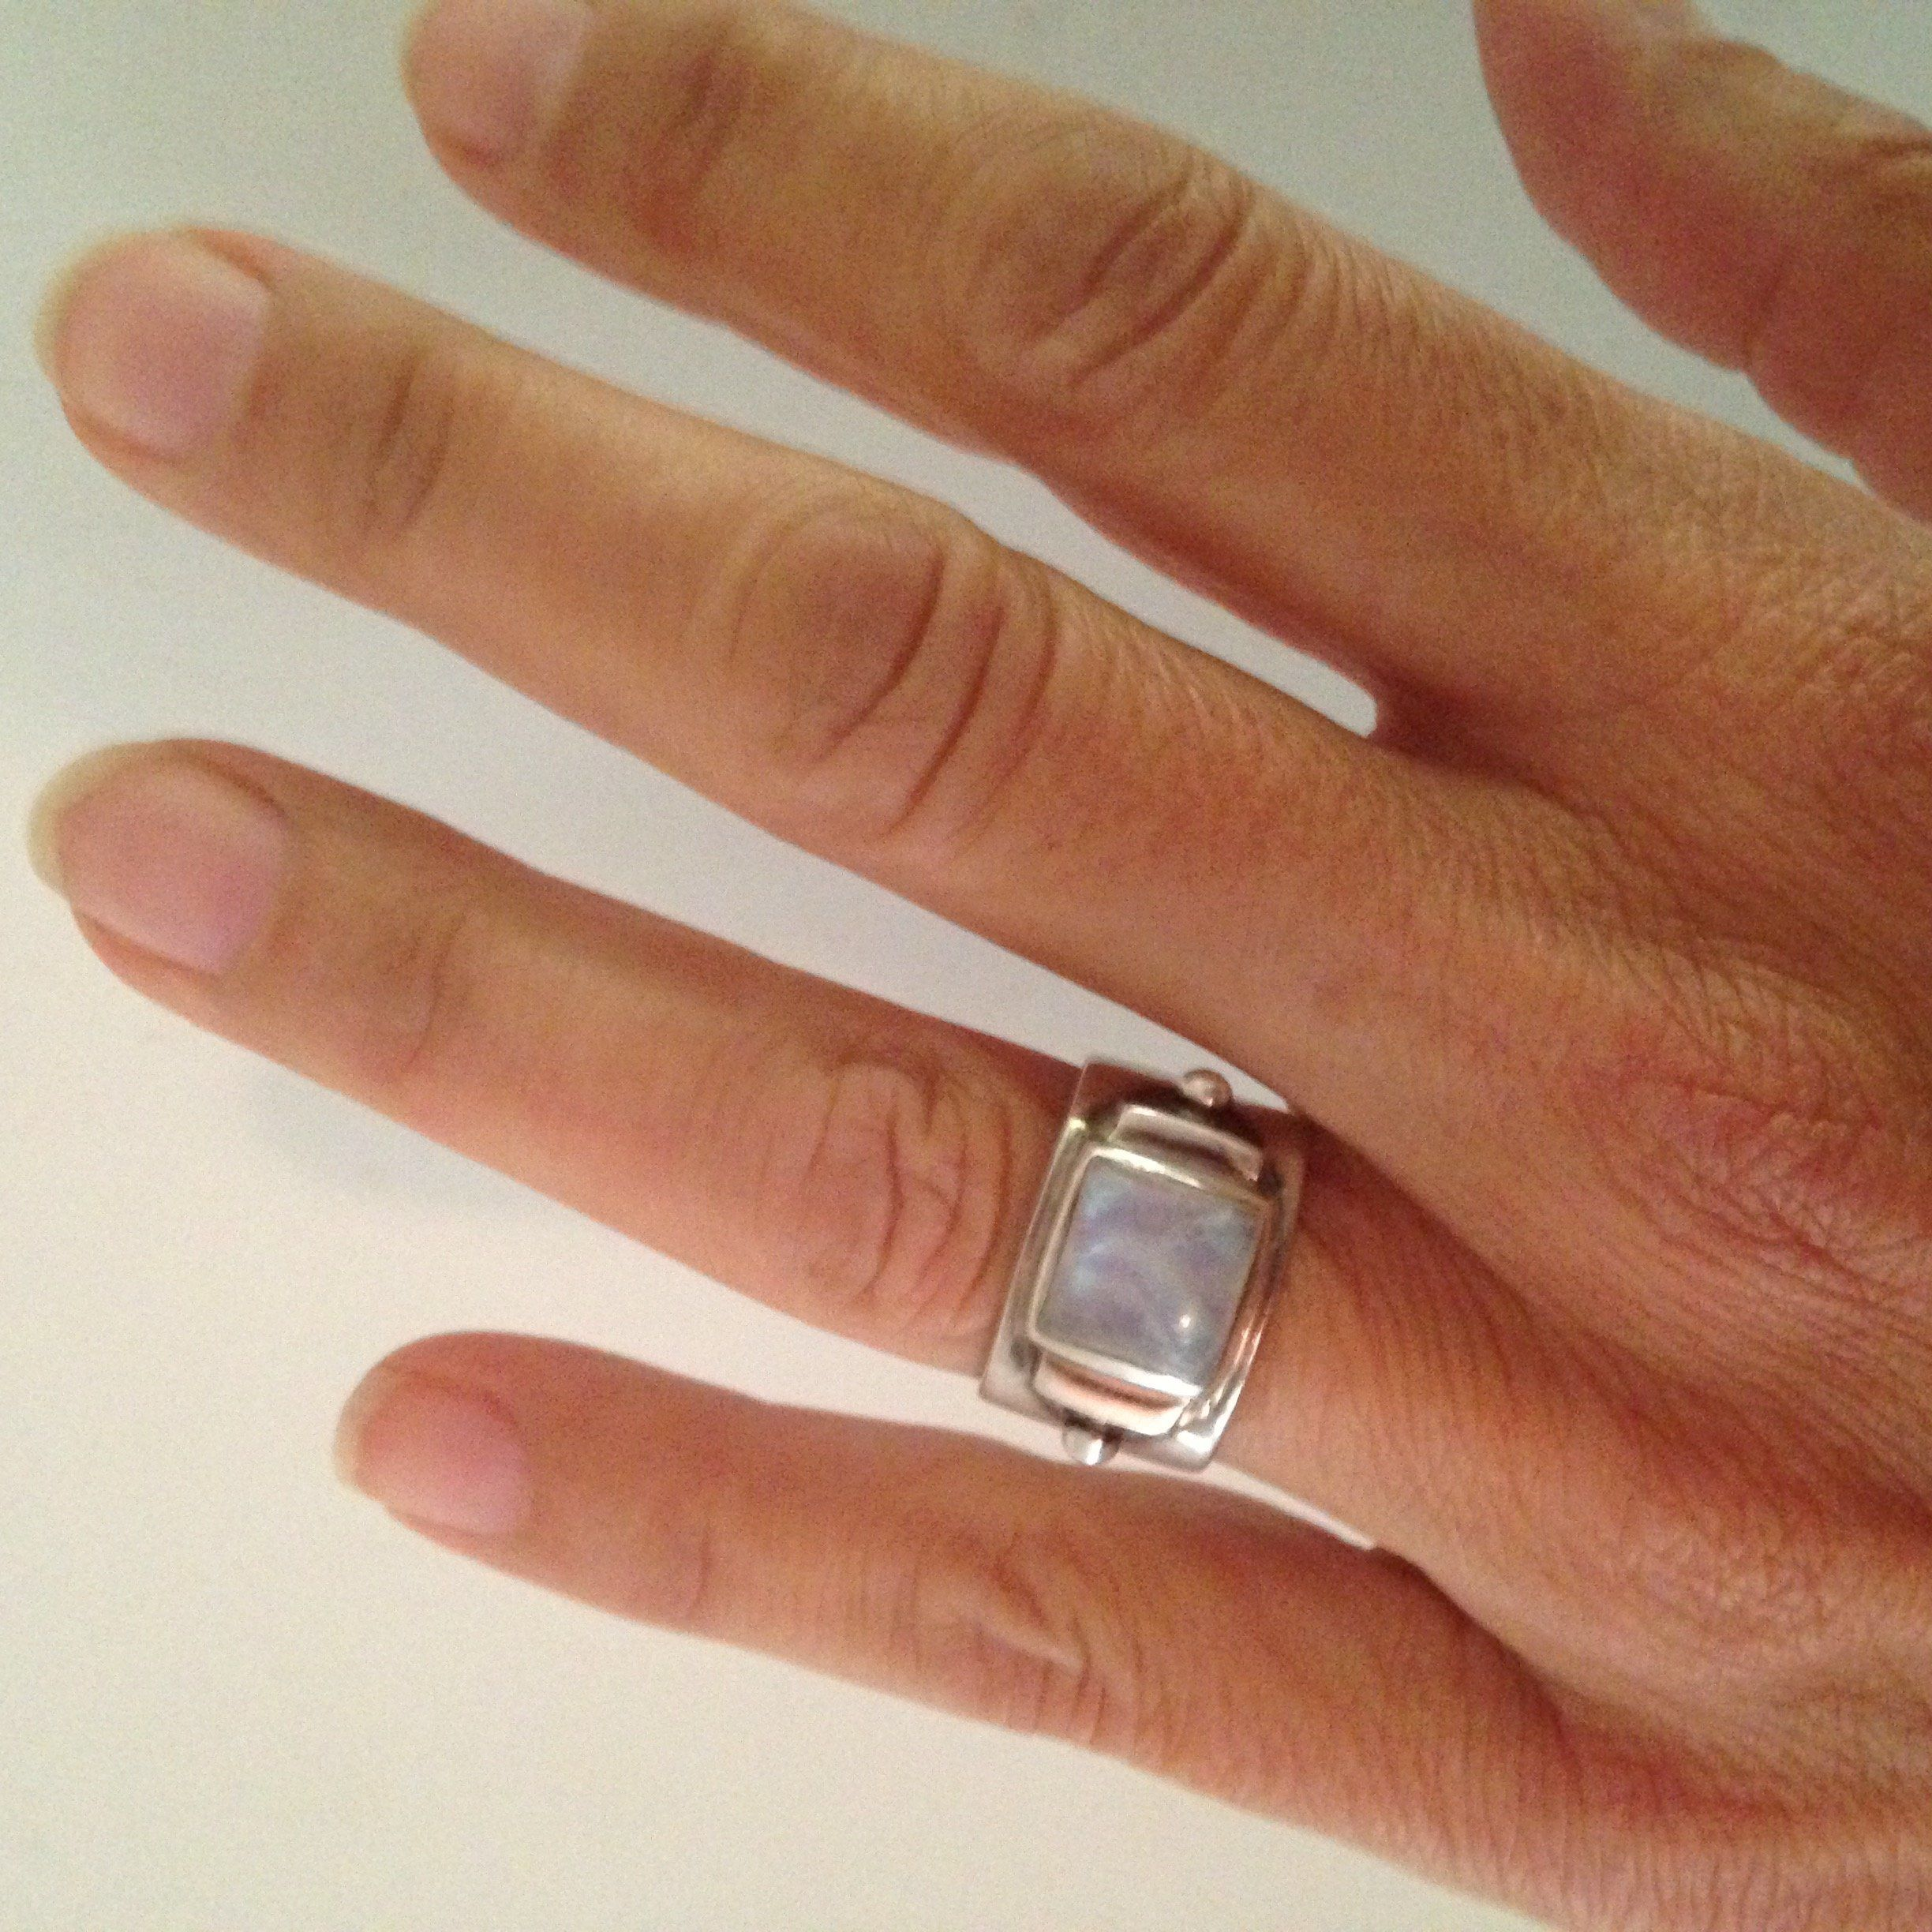 Ring to wear after divorce